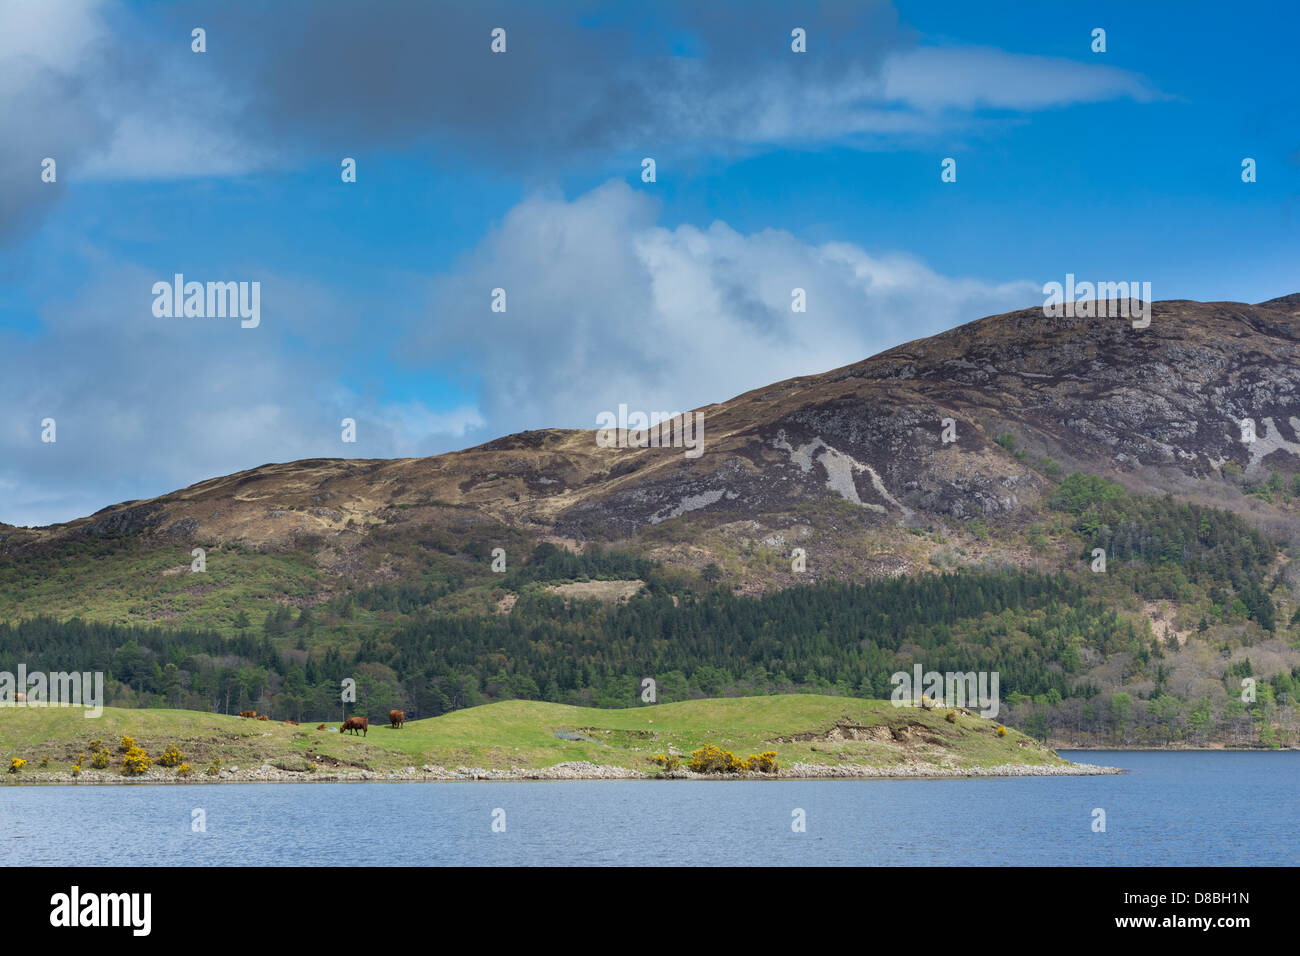 View of the shore of Loch Ba, isle of Mull, Scotland - Stock Image